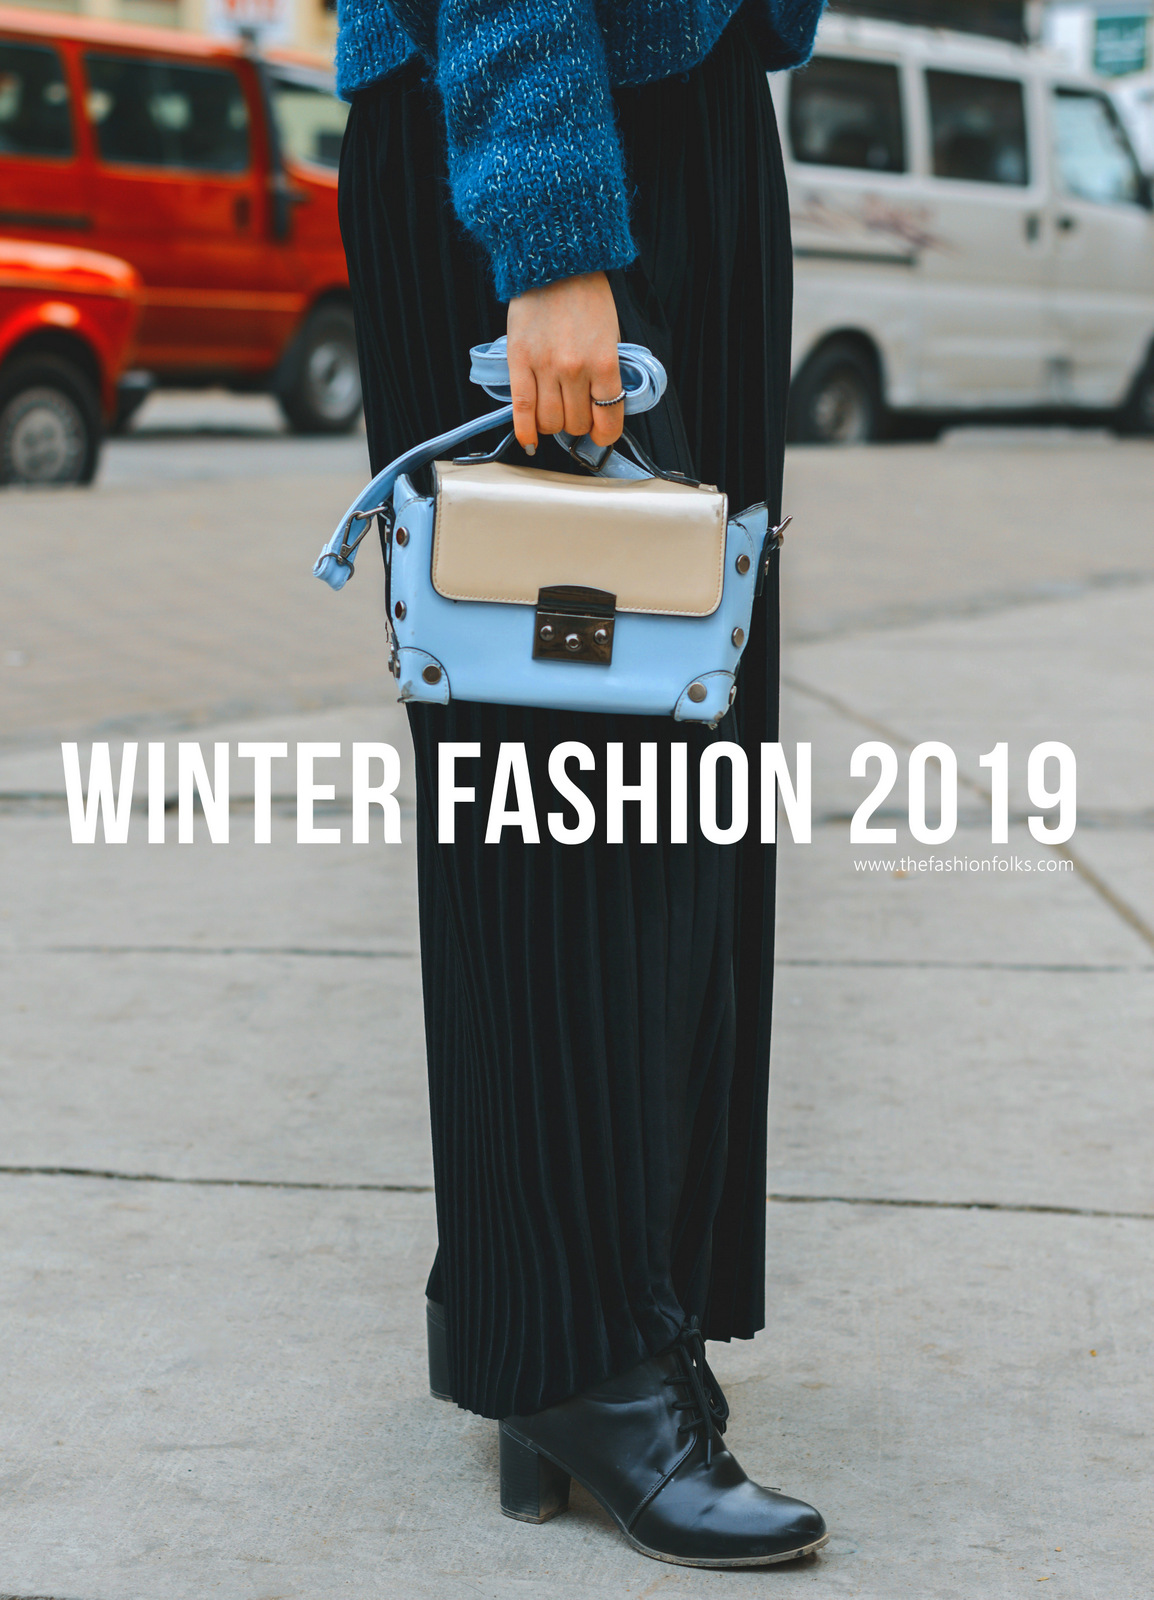 3 Ways To Work the Winter Fashion 2019